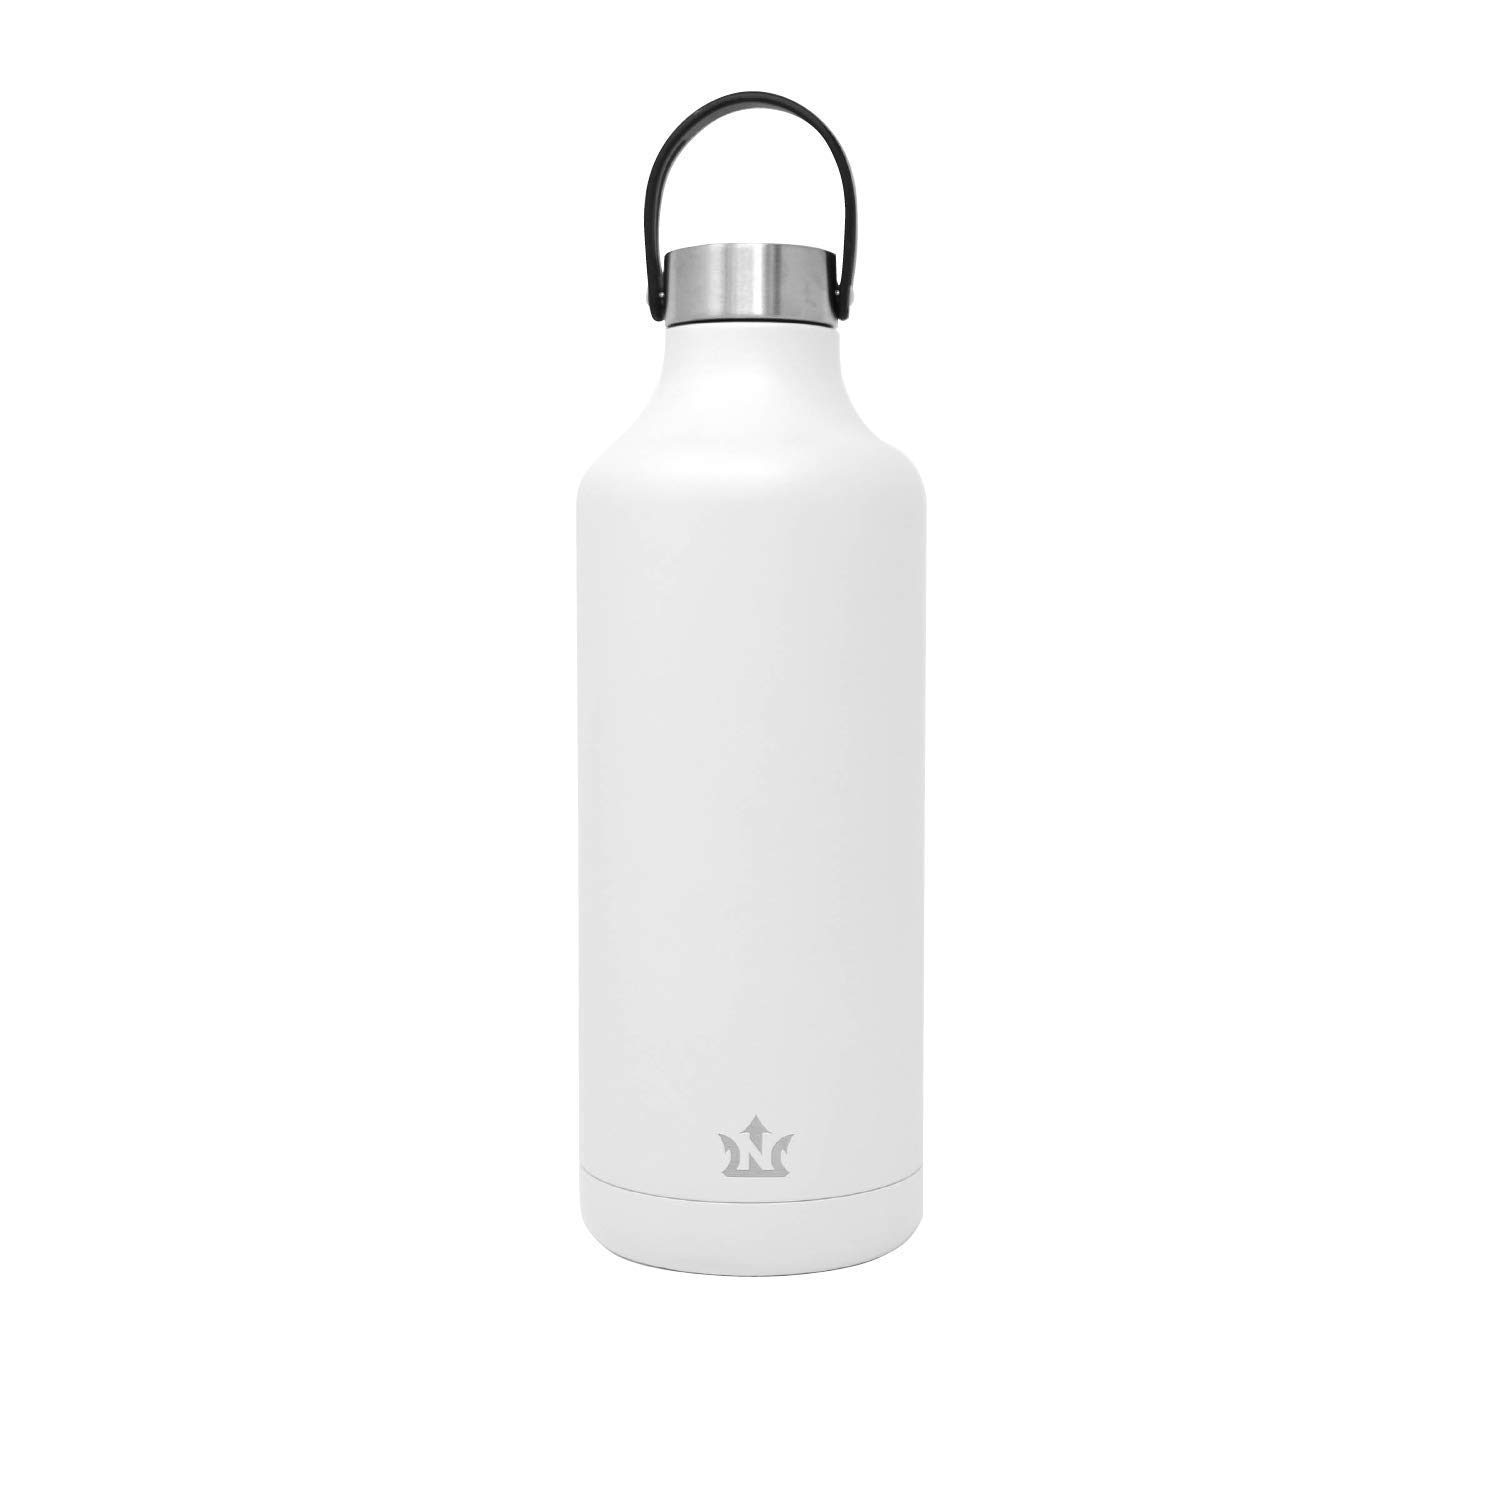 Neptune Bottle - Vacuum Insulated, Triple Wall Stainless Steel Water Bottle, with Interchangeable Carry Strap (Matte White, 32oz)